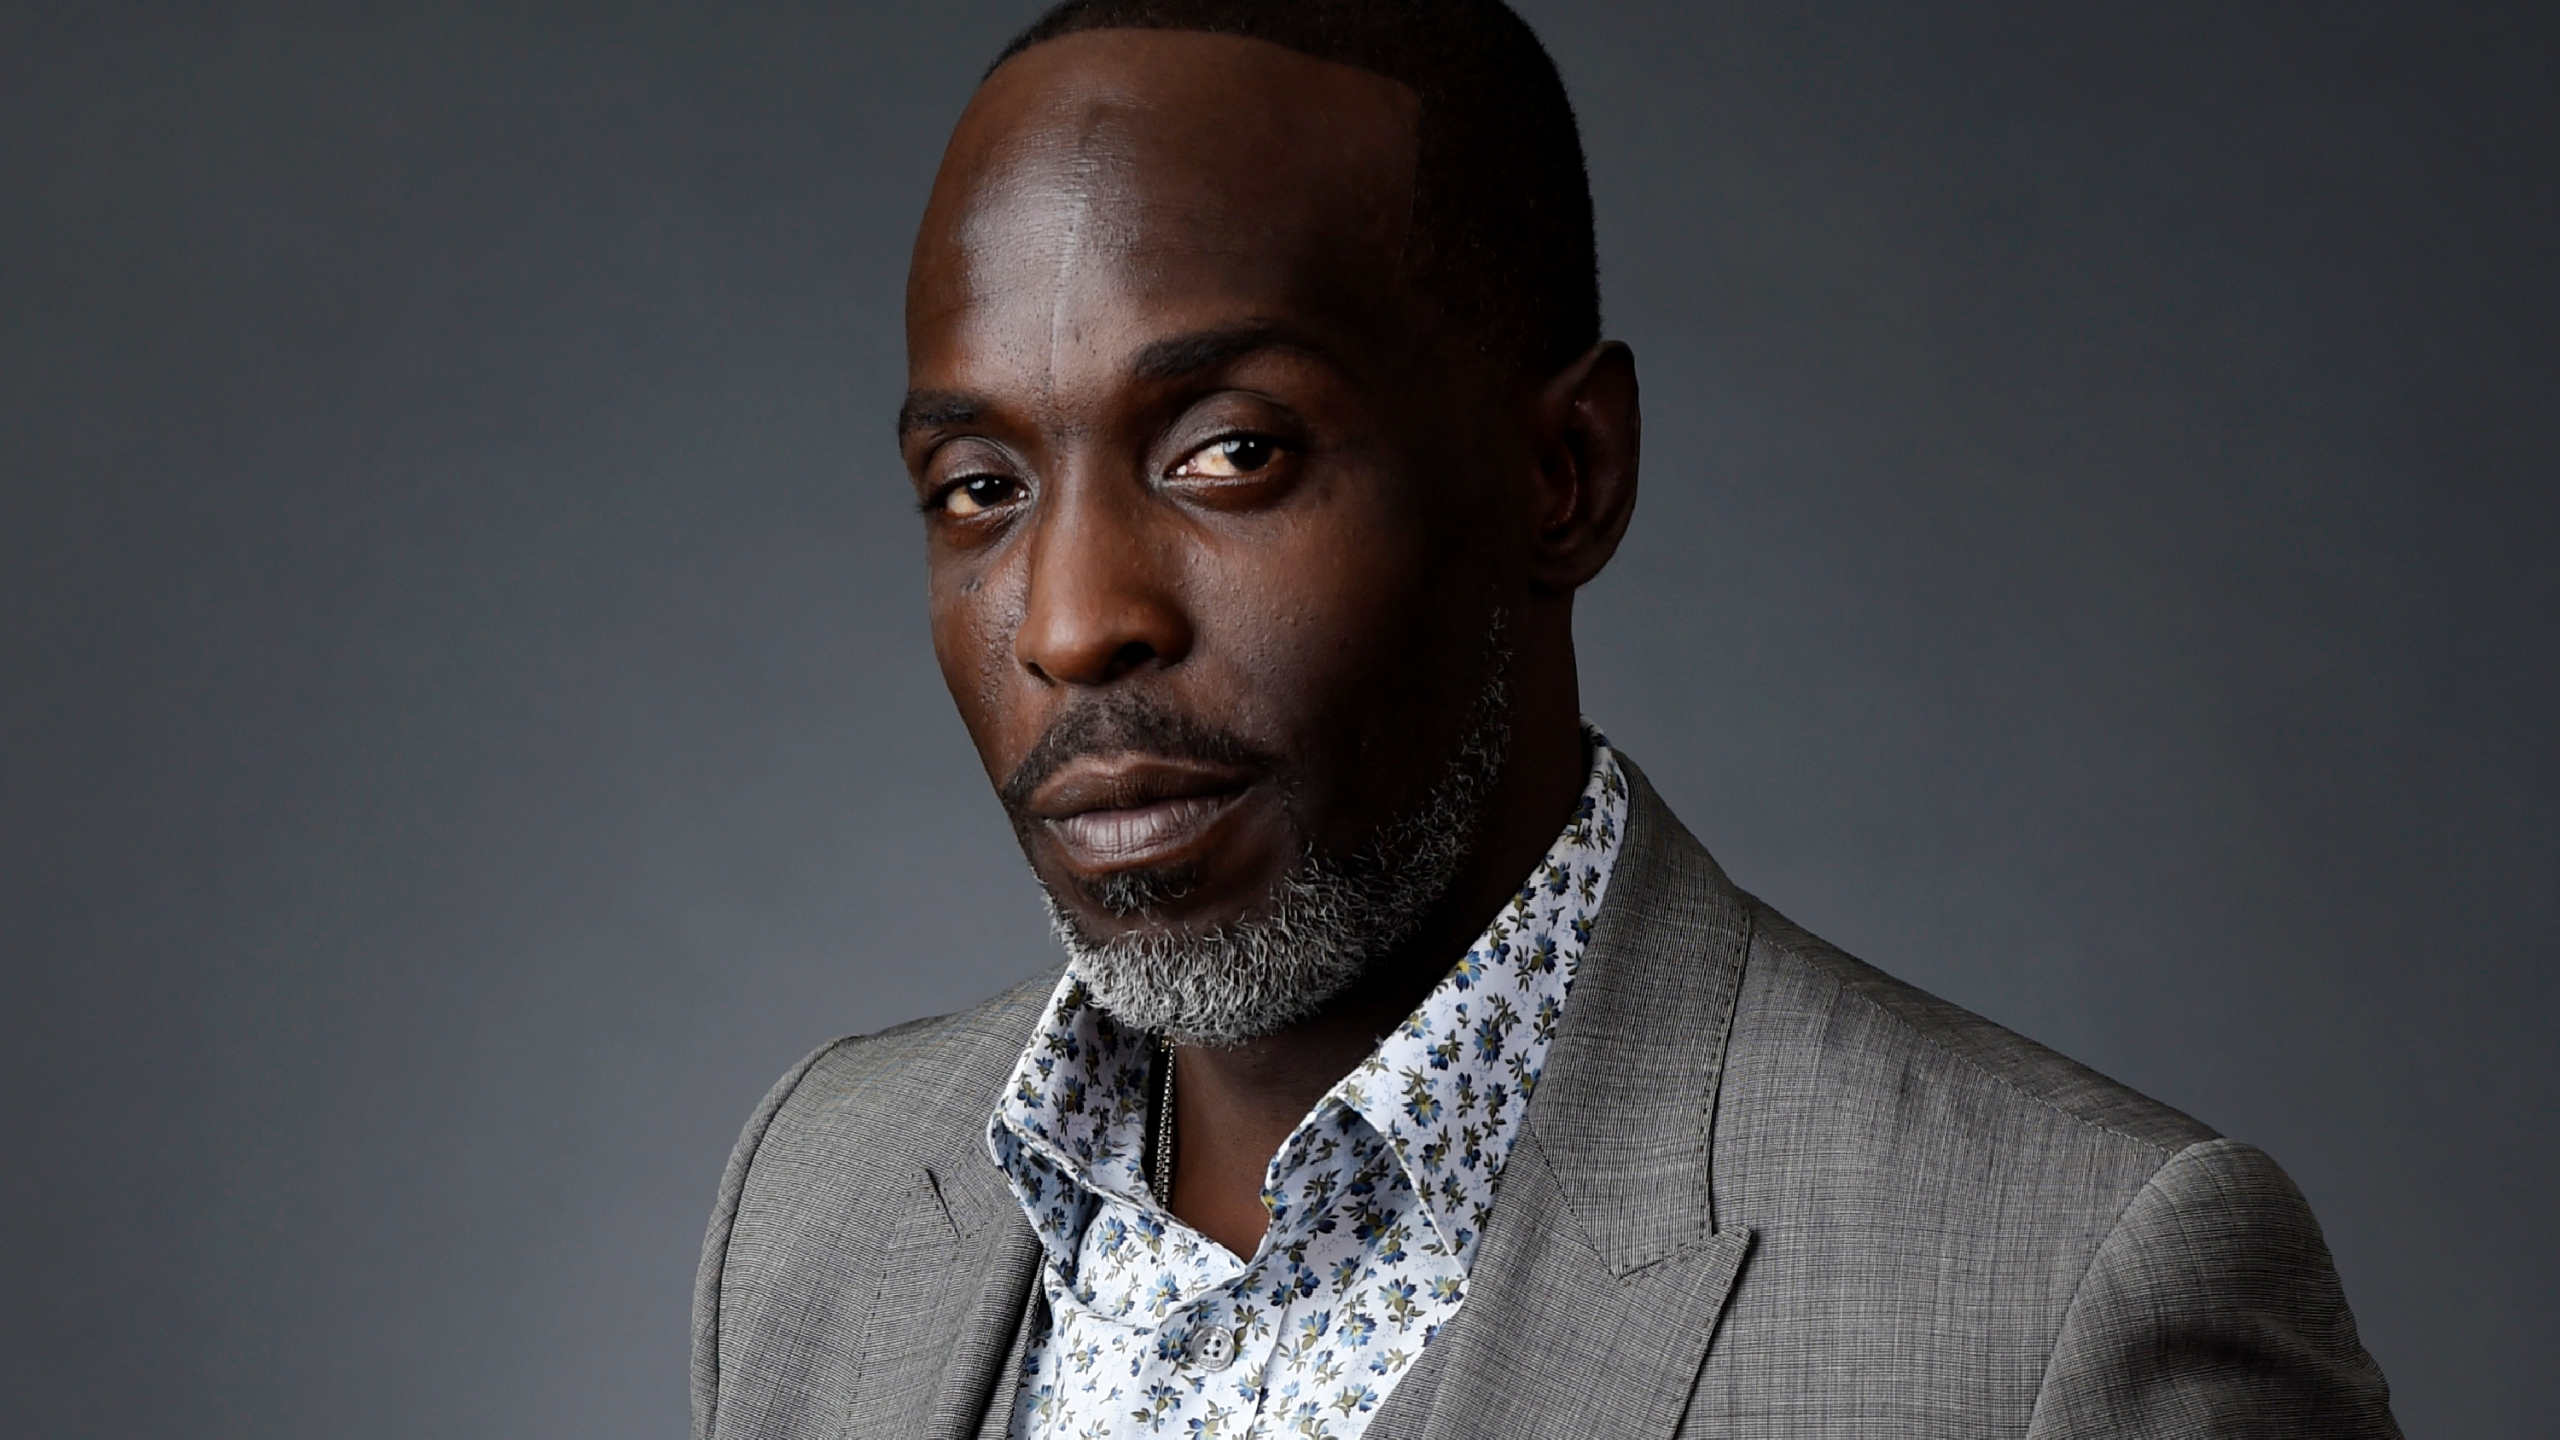 Actor Michael K. Williams poses for a portrait at the Beverly Hilton during the 2016 Television Critics Association Summer Press Tour on July 30, 2016, in Beverly Hills, Calif. (AP Photo/Chris Pizzello, File)